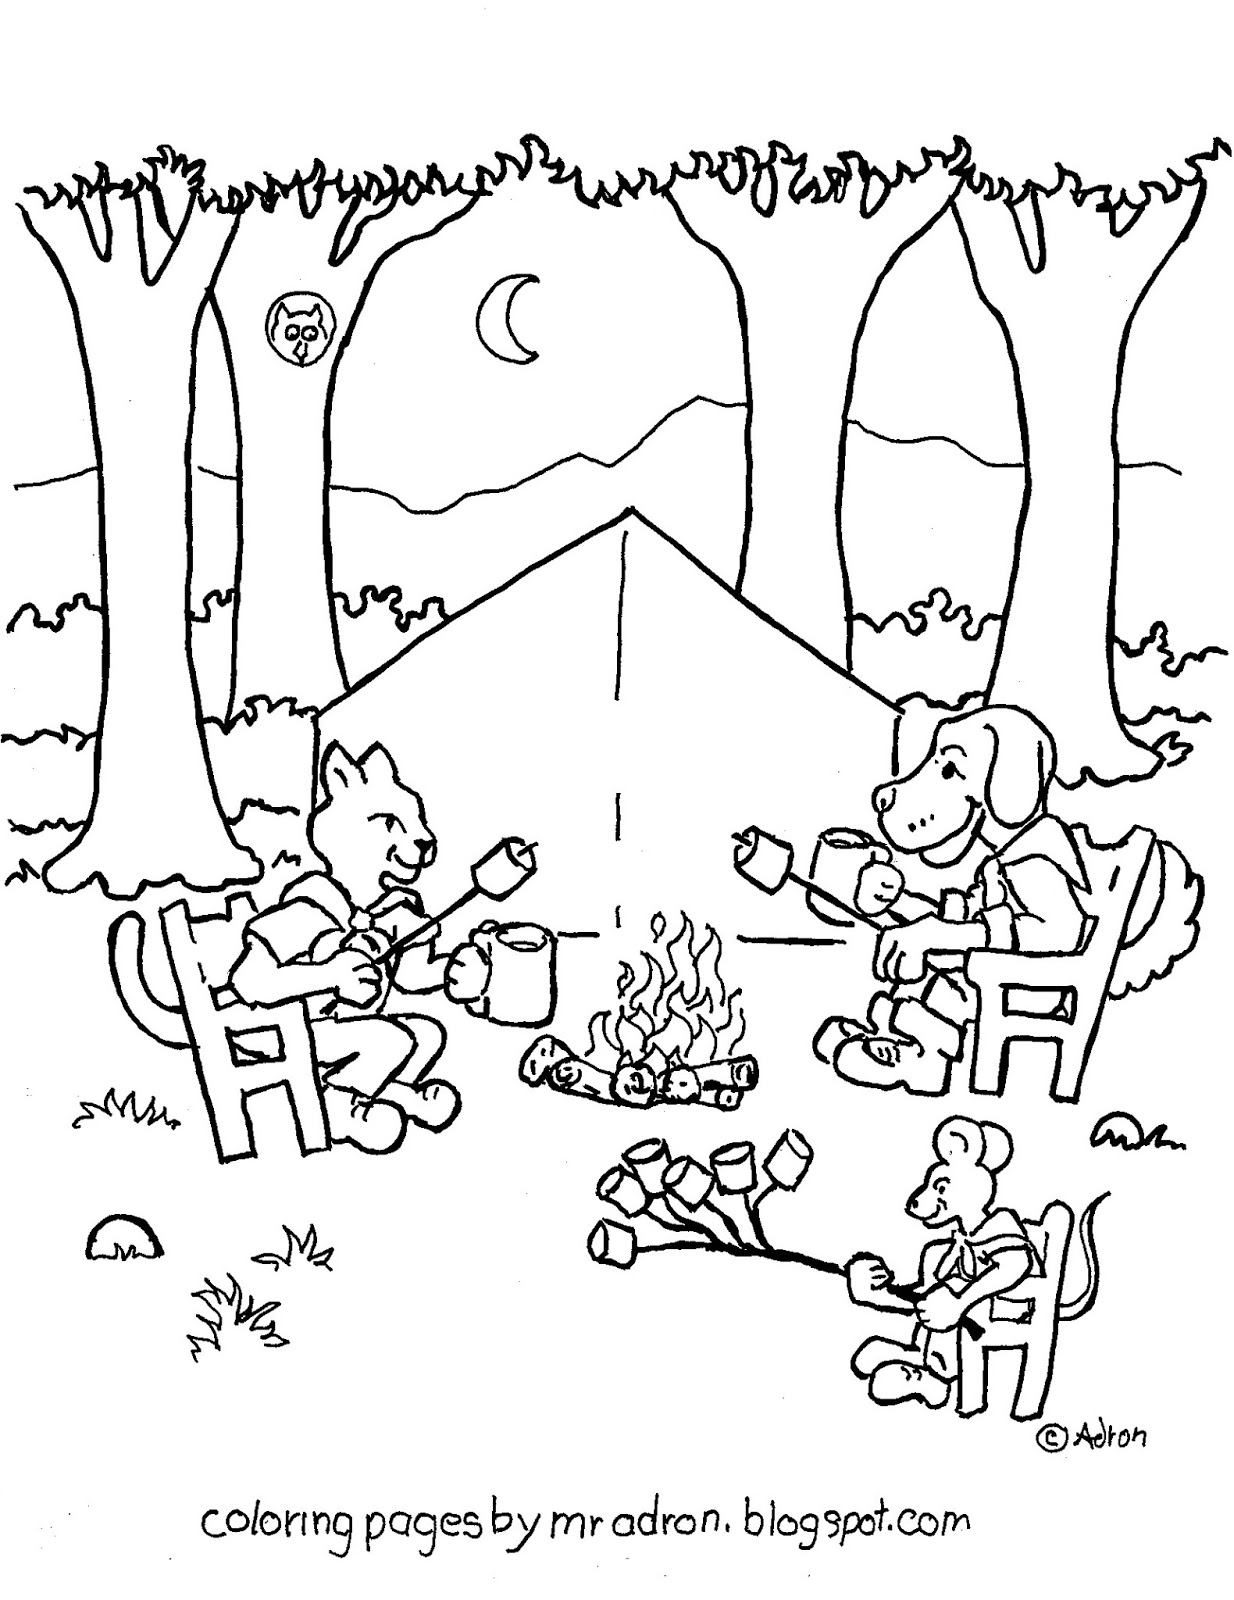 Coloring Pages For Kids By Mr Adron Animal Friends Camp And Roast Marshmallows Printable